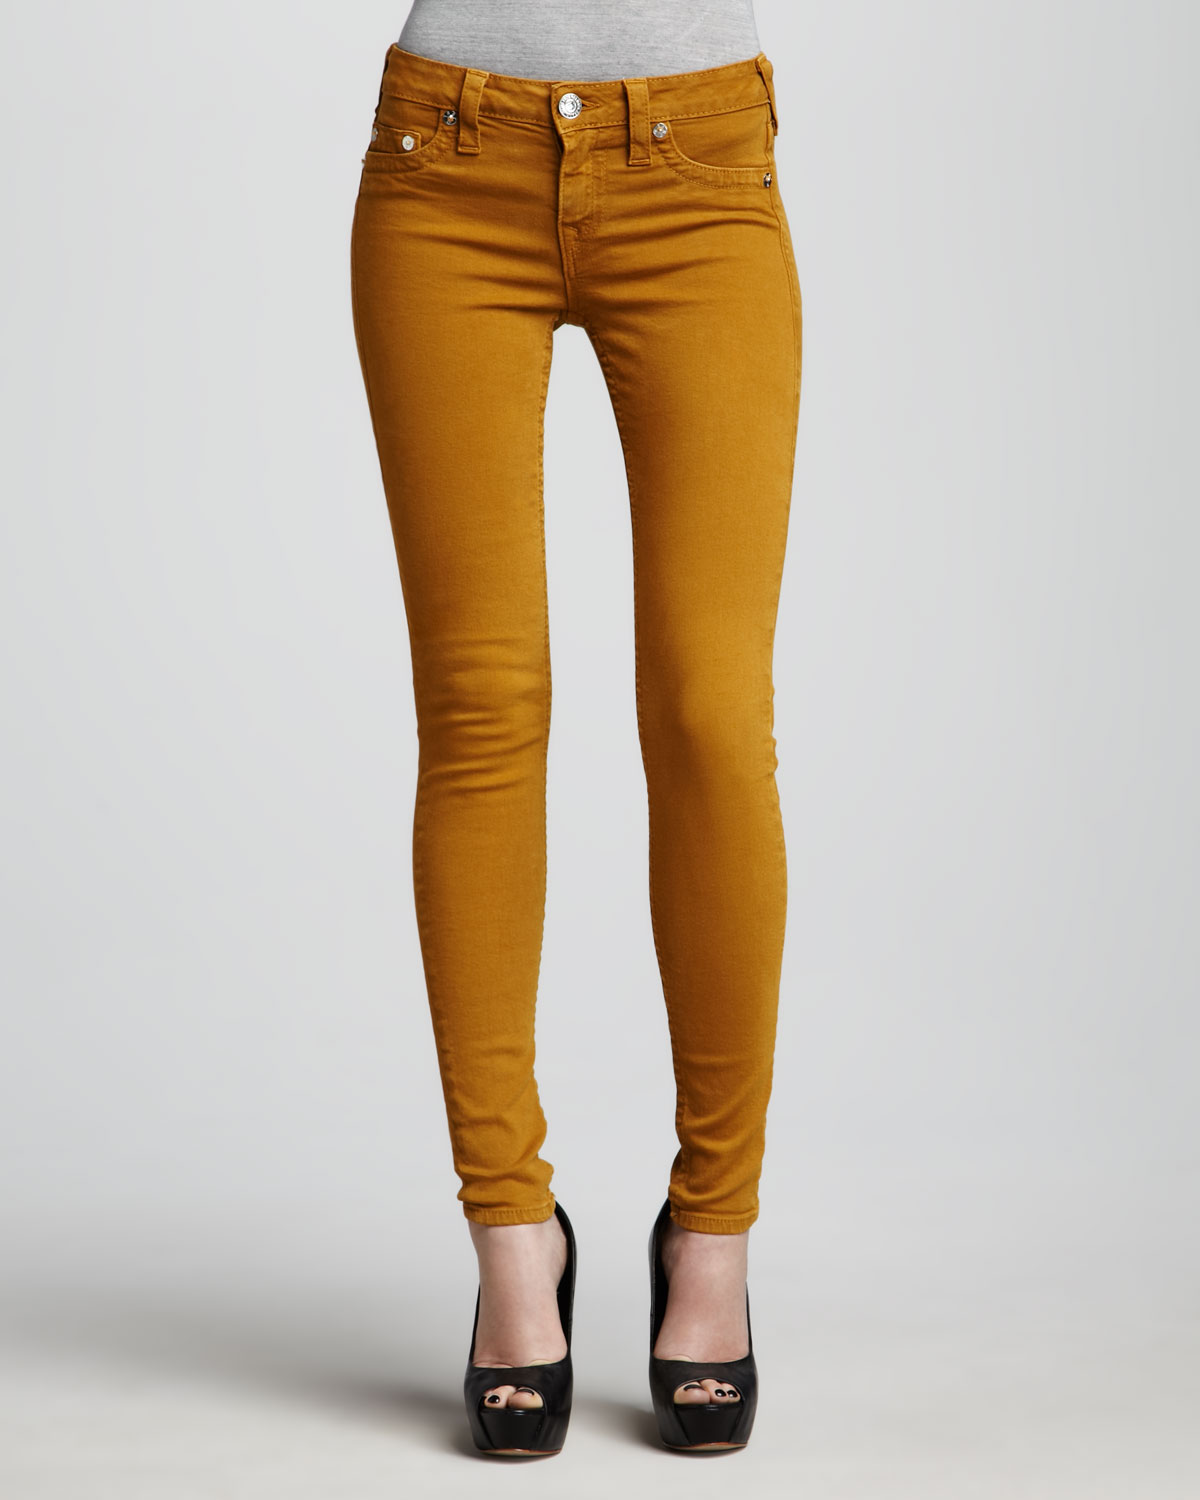 FREE SHIPPING AVAILABLE! Shop rabbetedh.ga and save on Yellow Jeans.